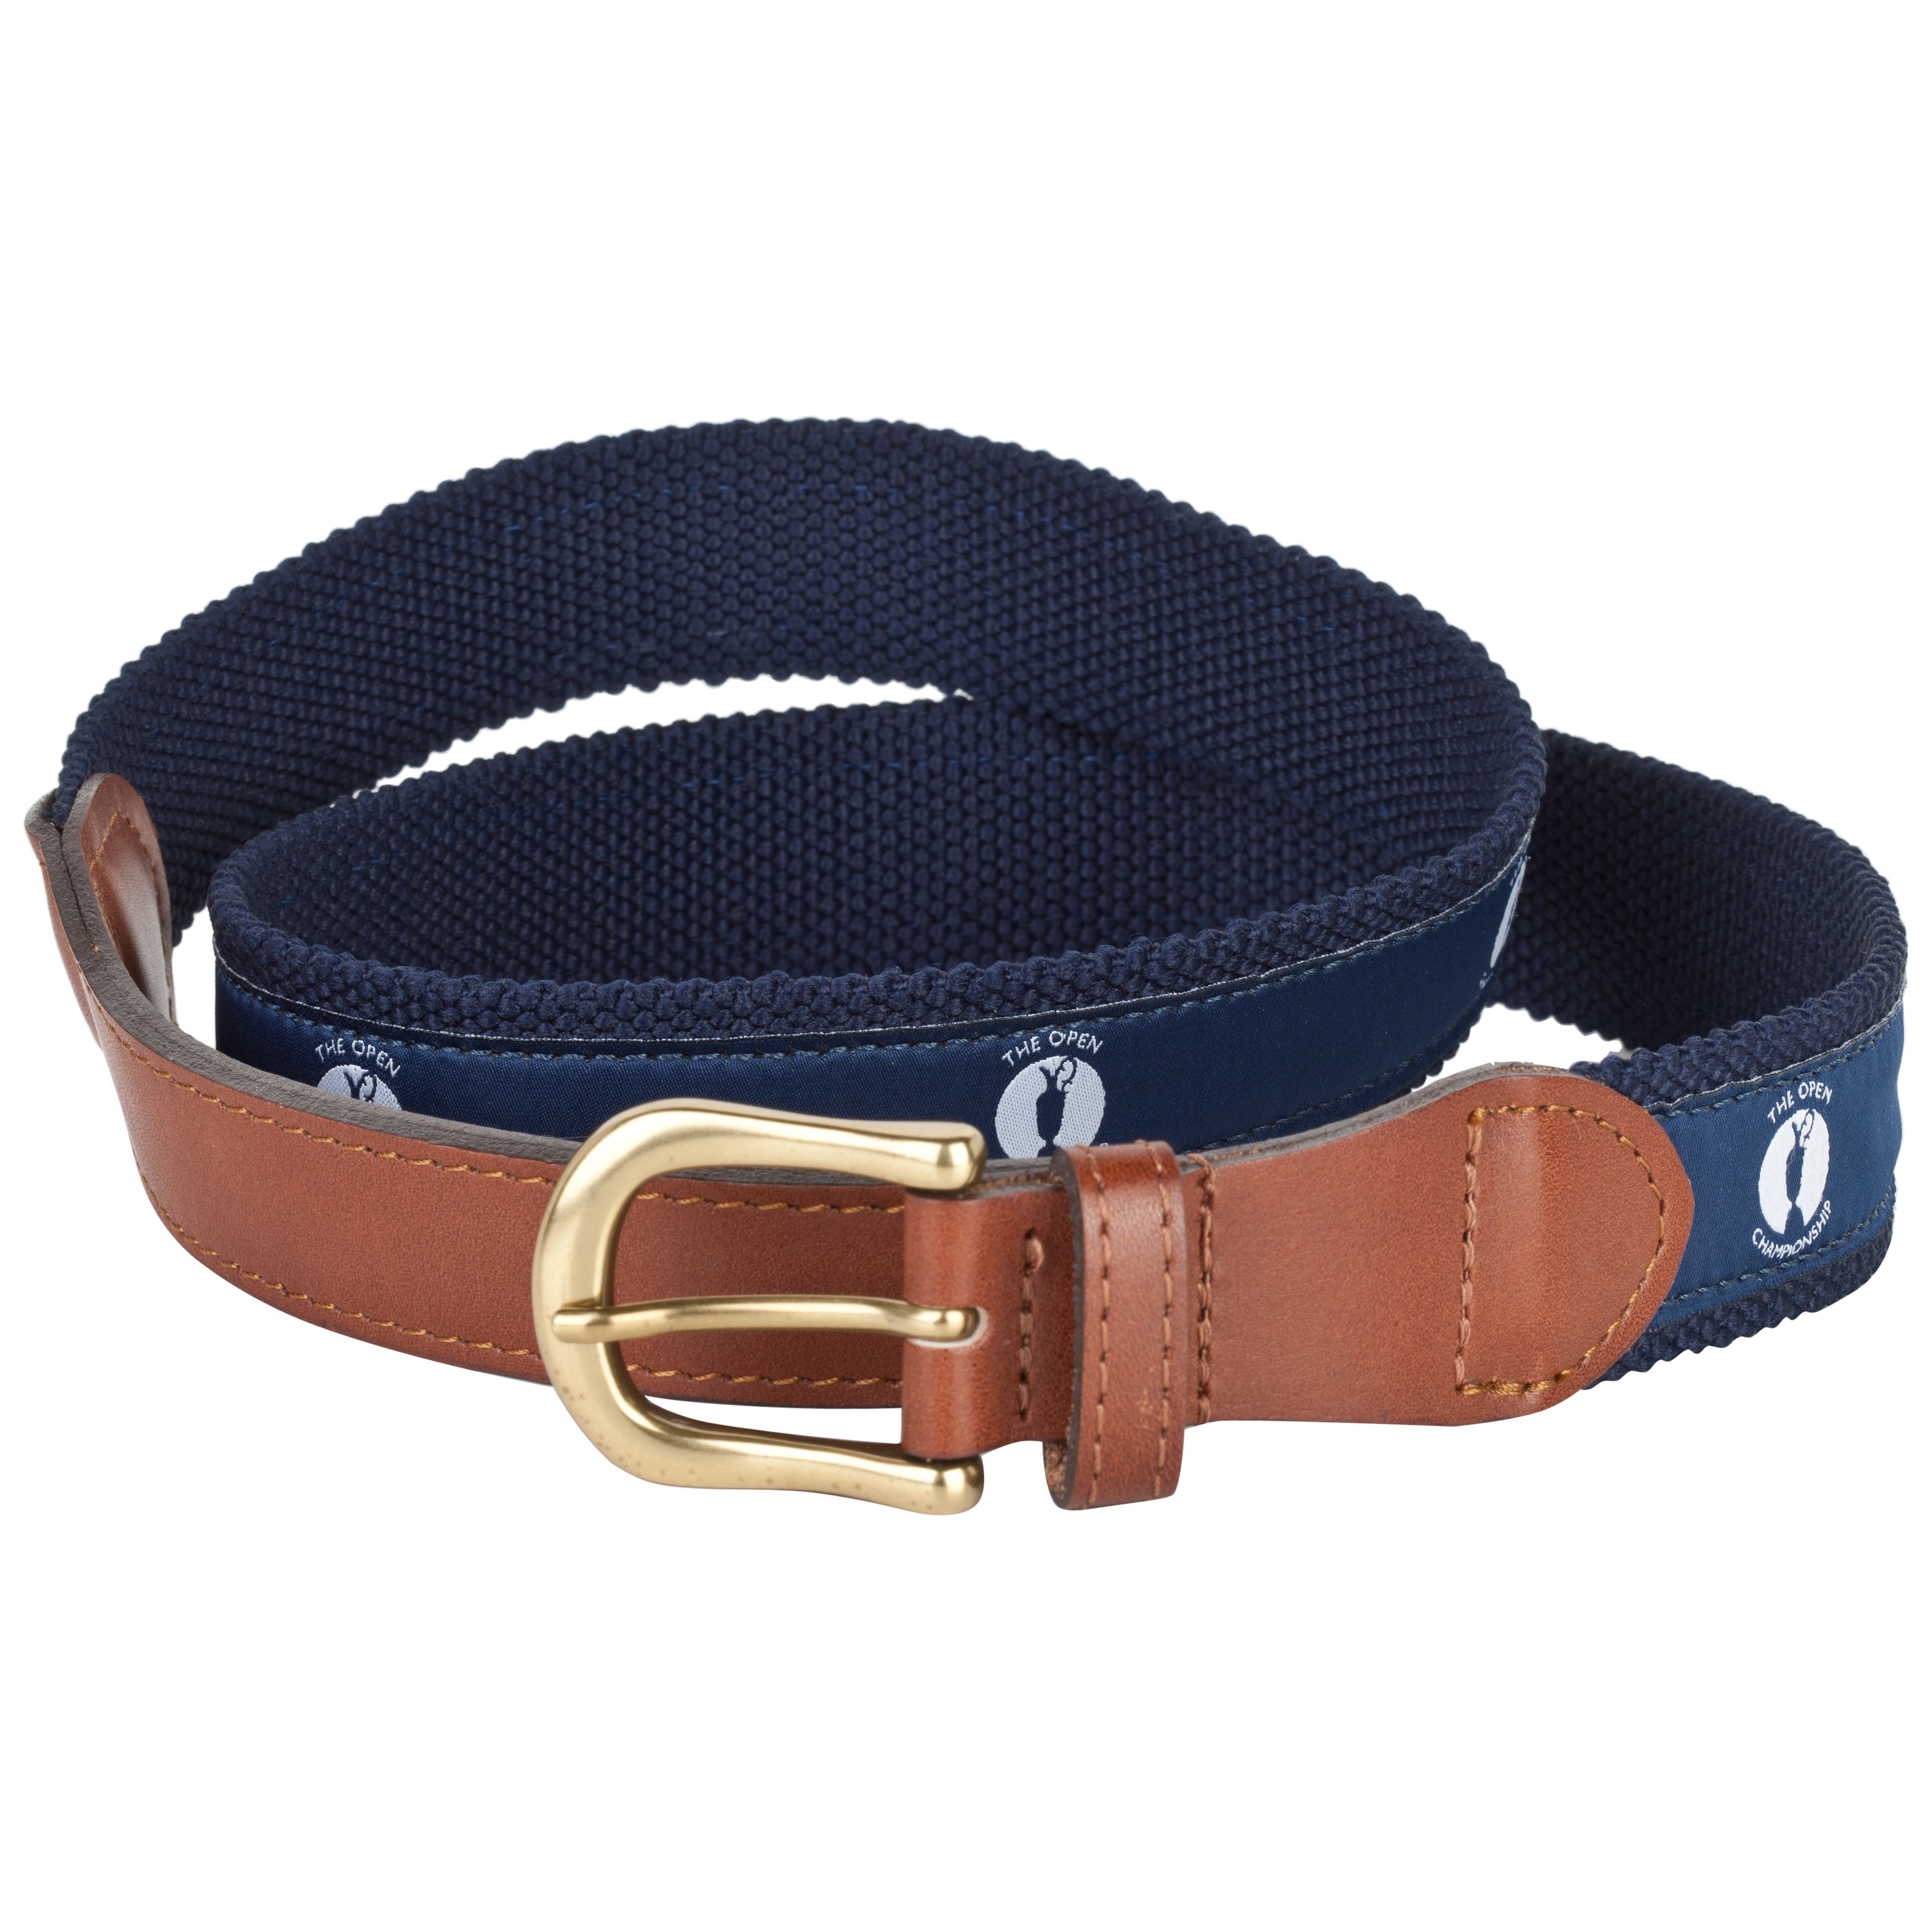 The Open Championship Webbing Belt - Blue